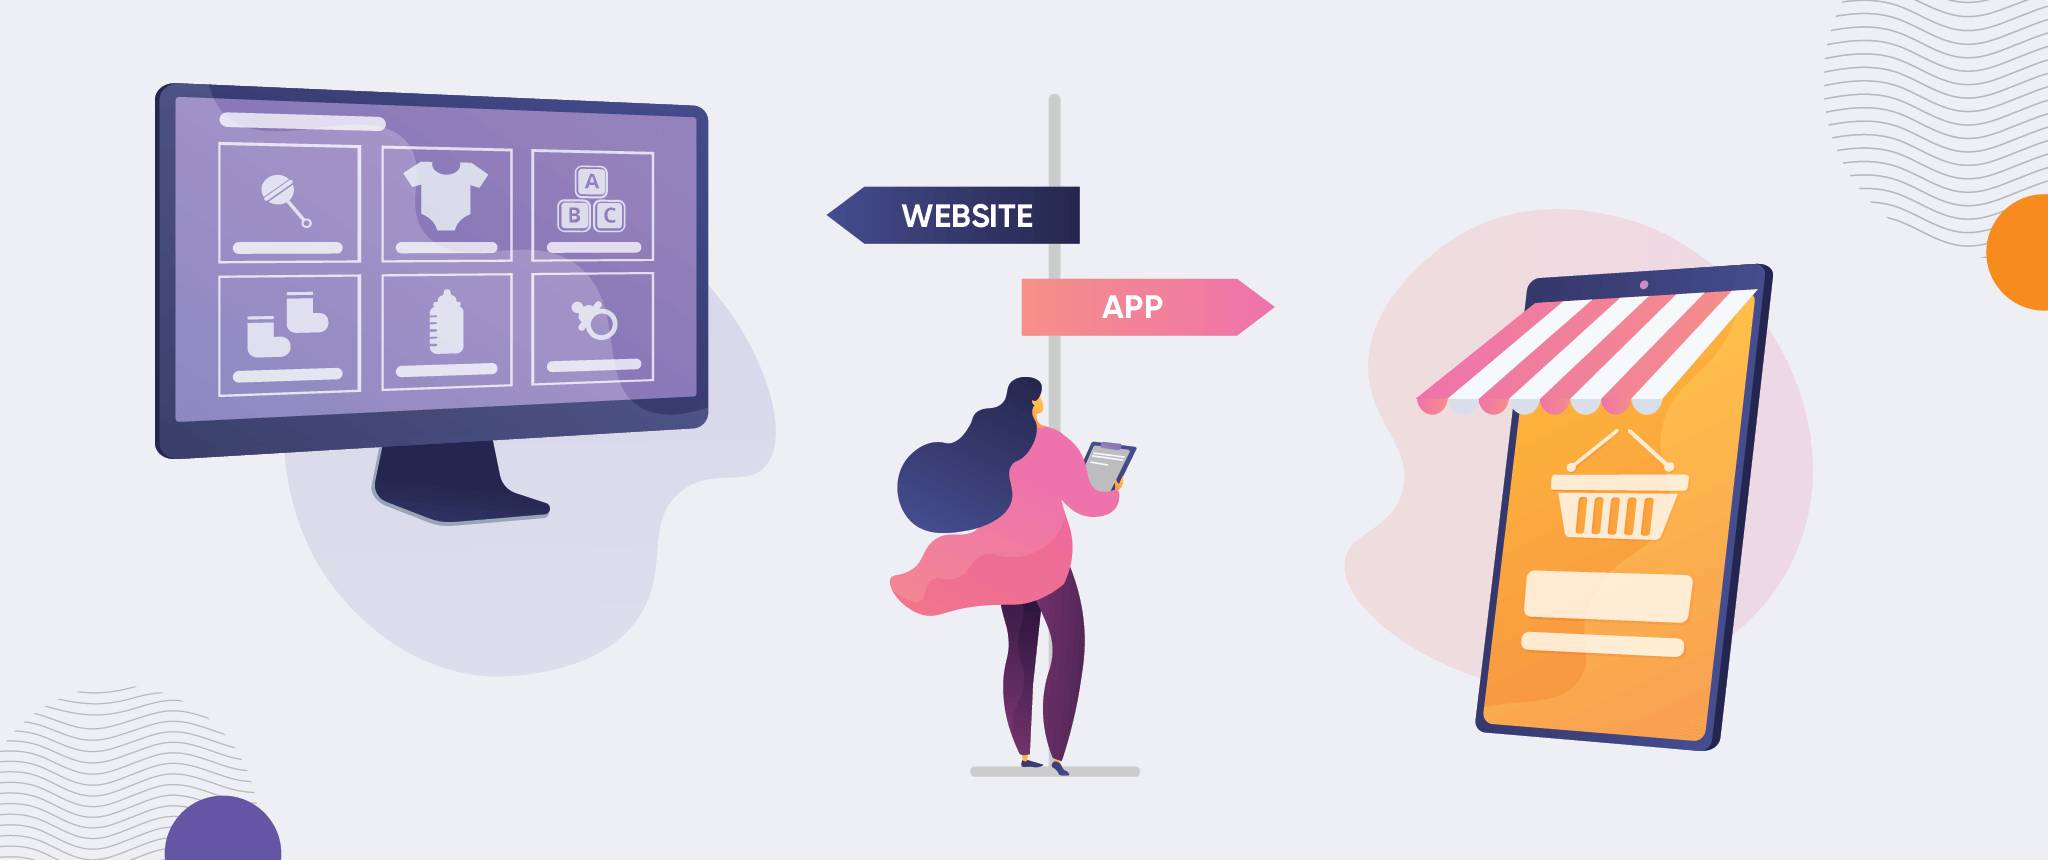 App vs Website: Which Is Right for My Business? [Infographic]